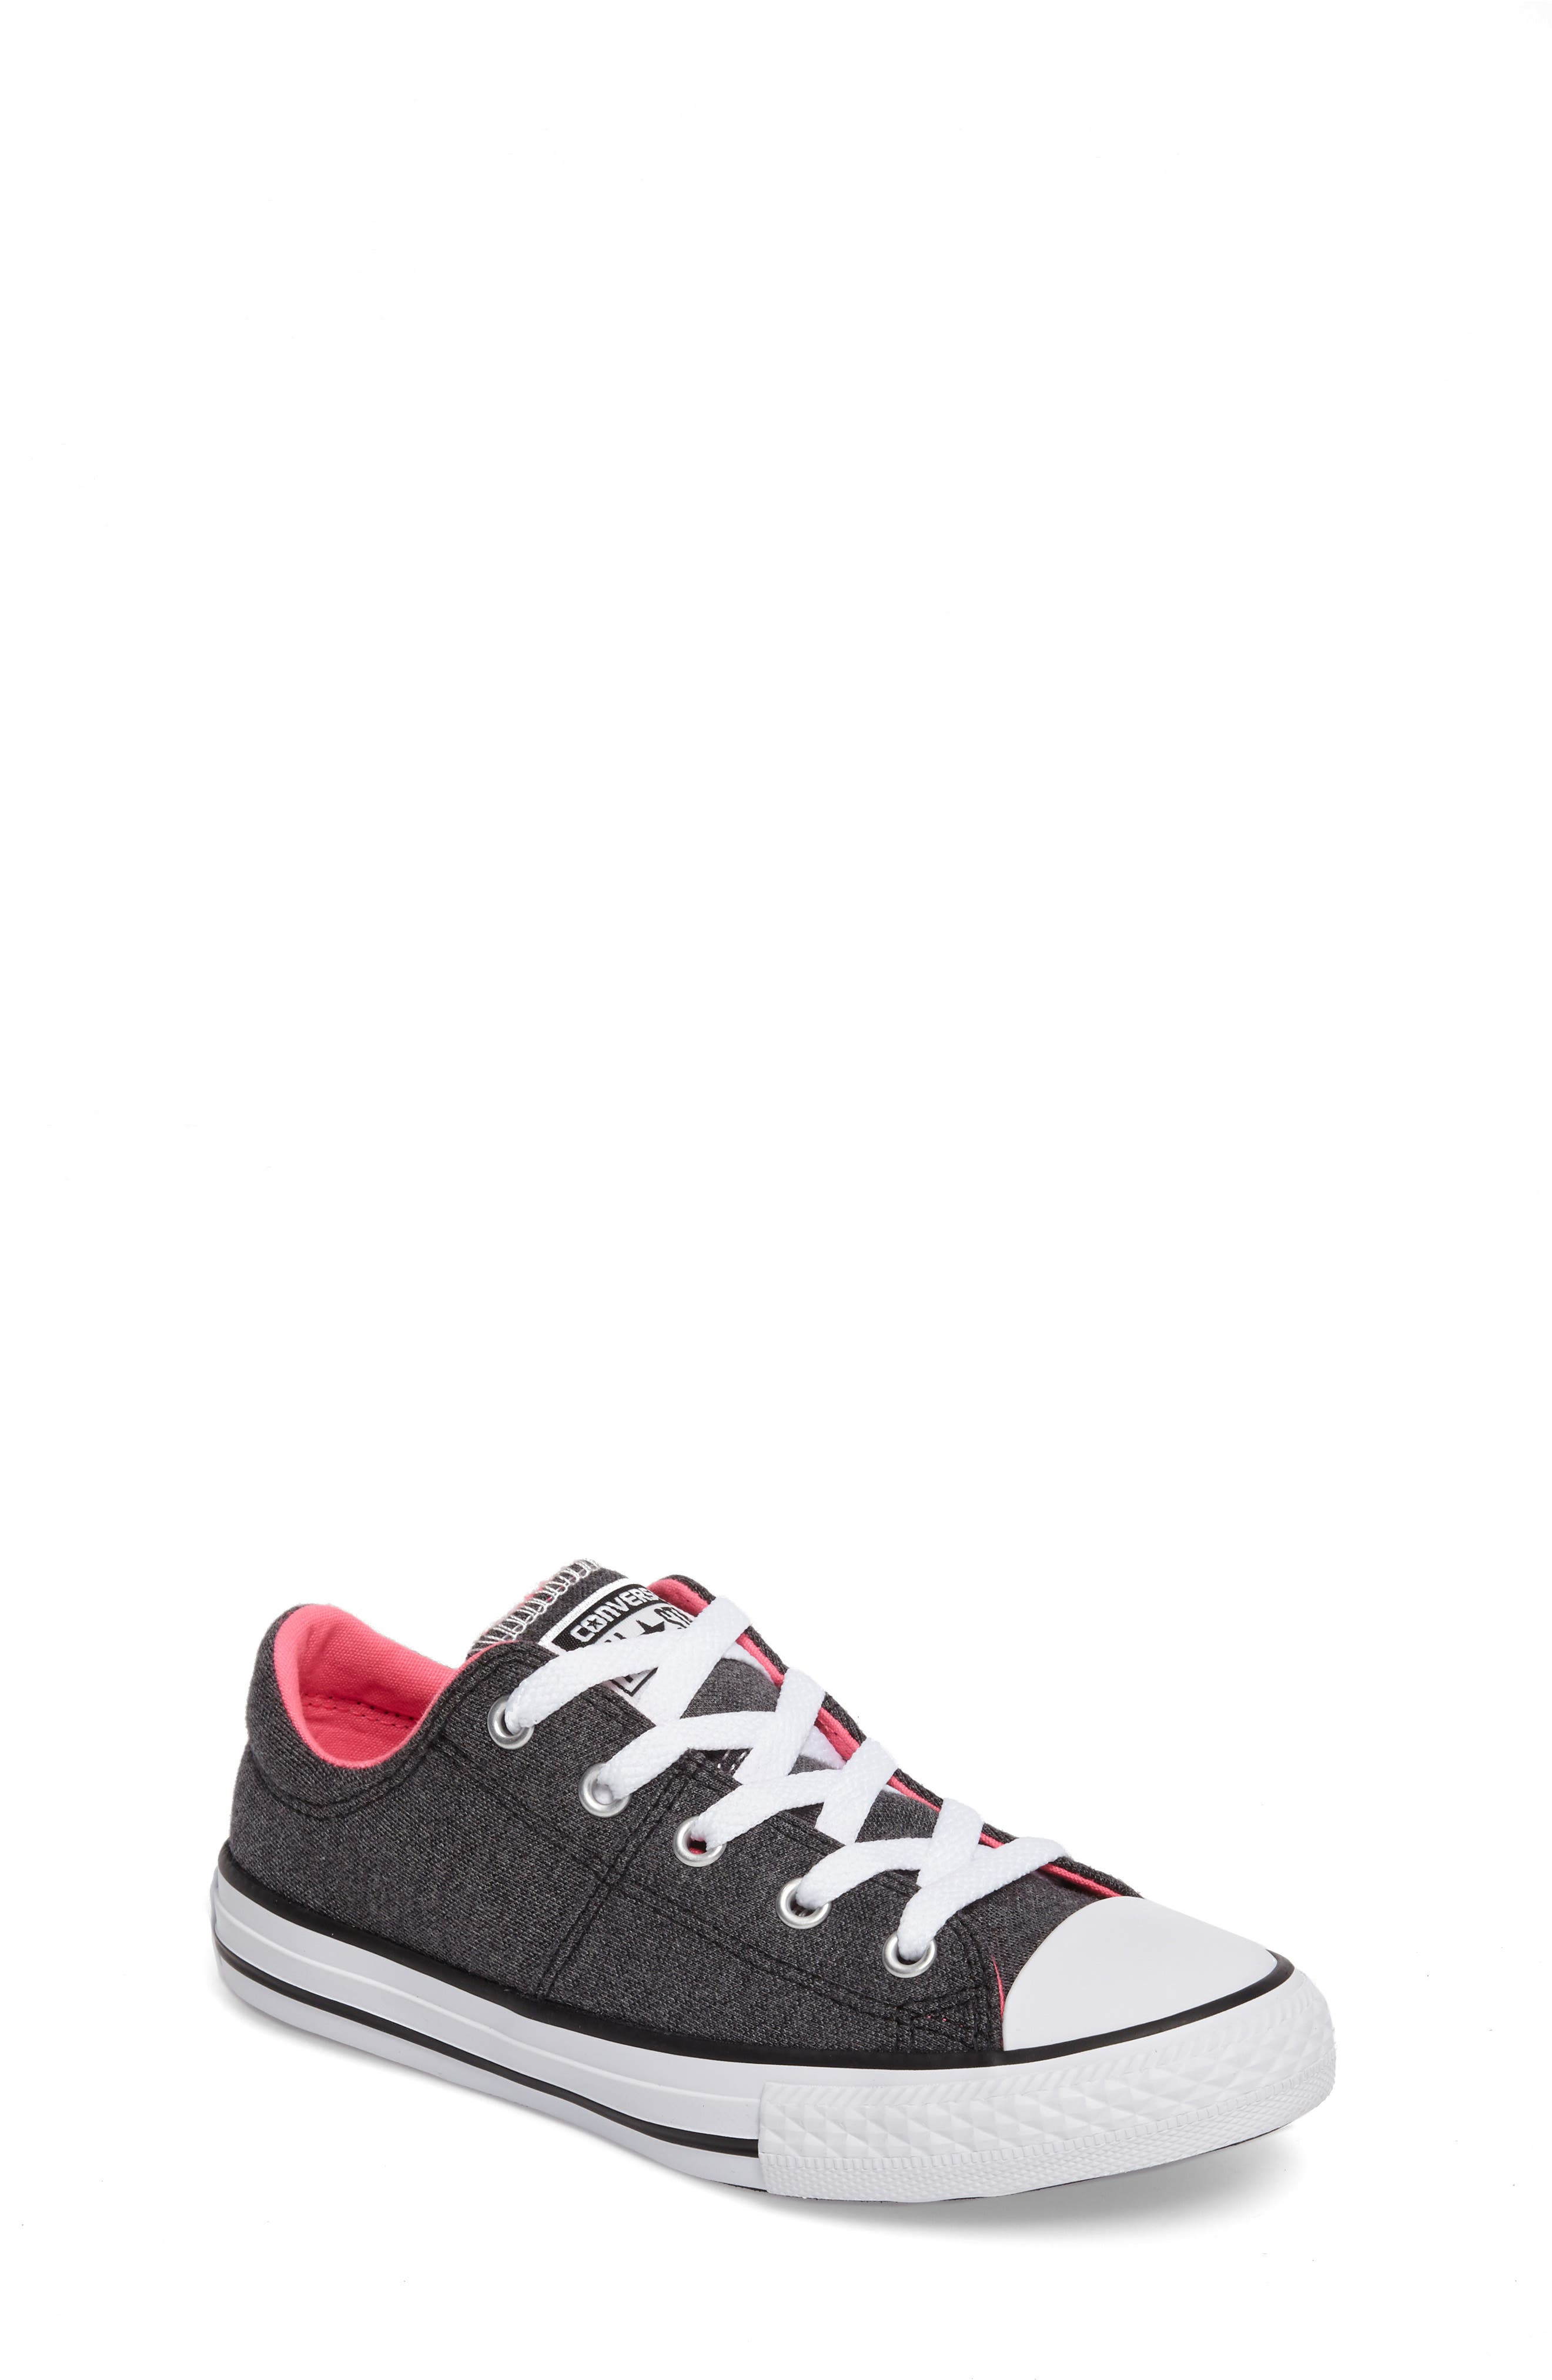 Chuck Taylor<sup>®</sup> All Star<sup>®</sup> Madison Low Top Sneaker,                         Main,                         color,